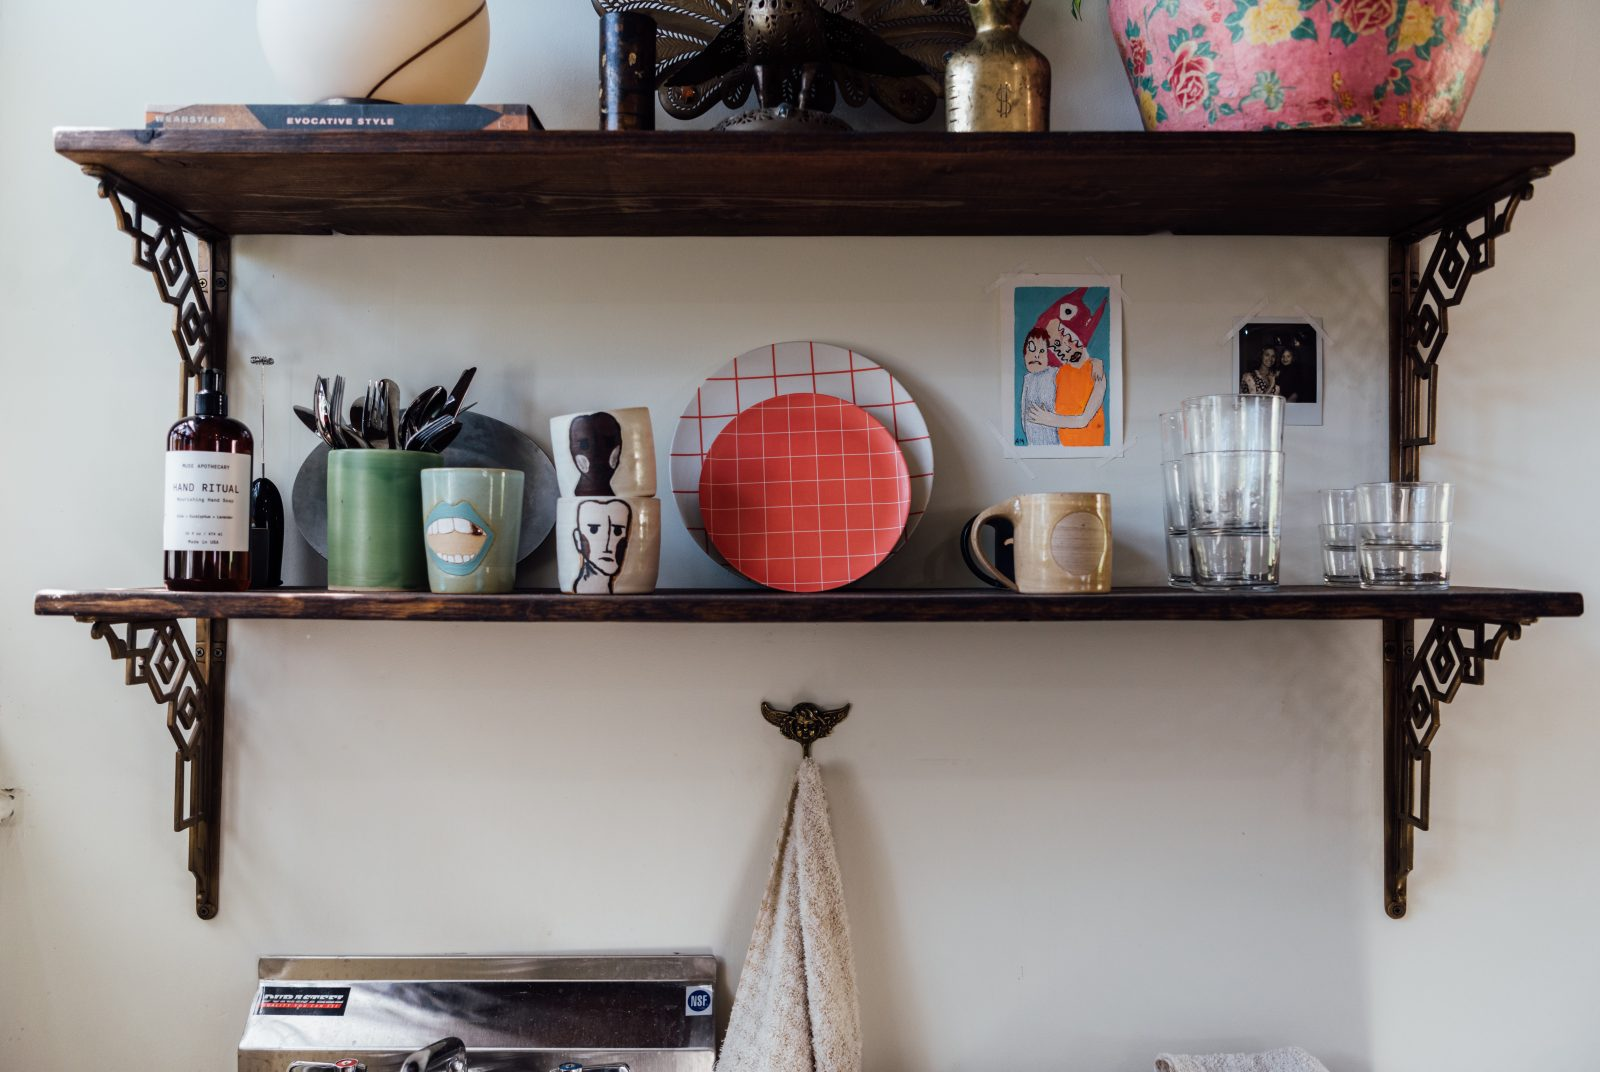 Shelves, cups, and plates at the Relic Home